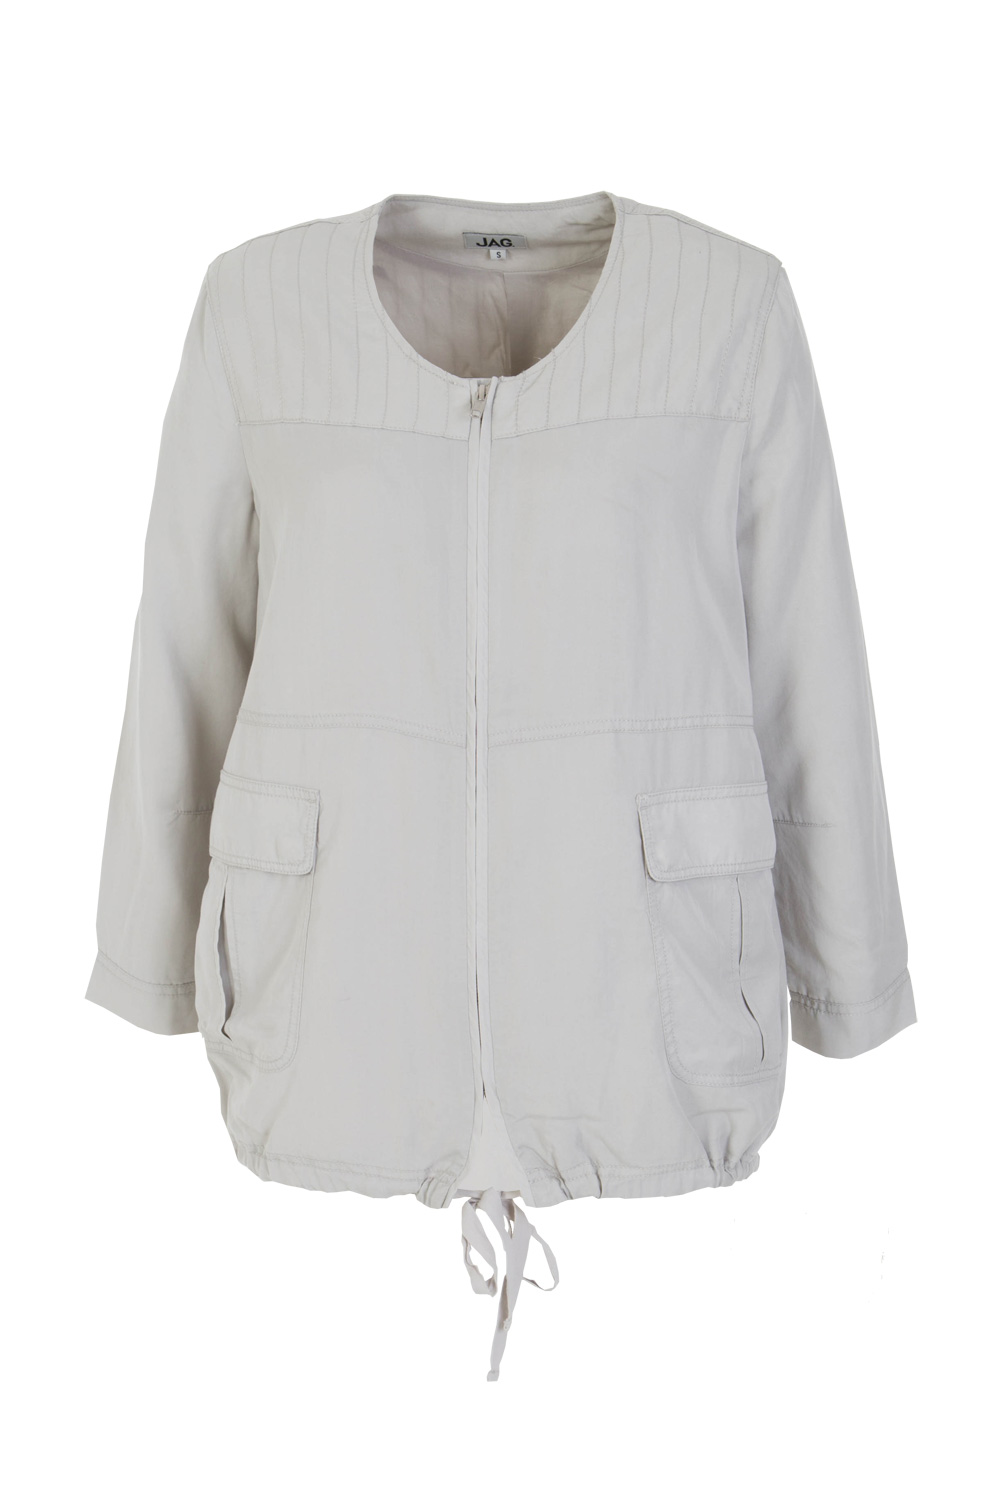 JAG Soft Quilted Jacket